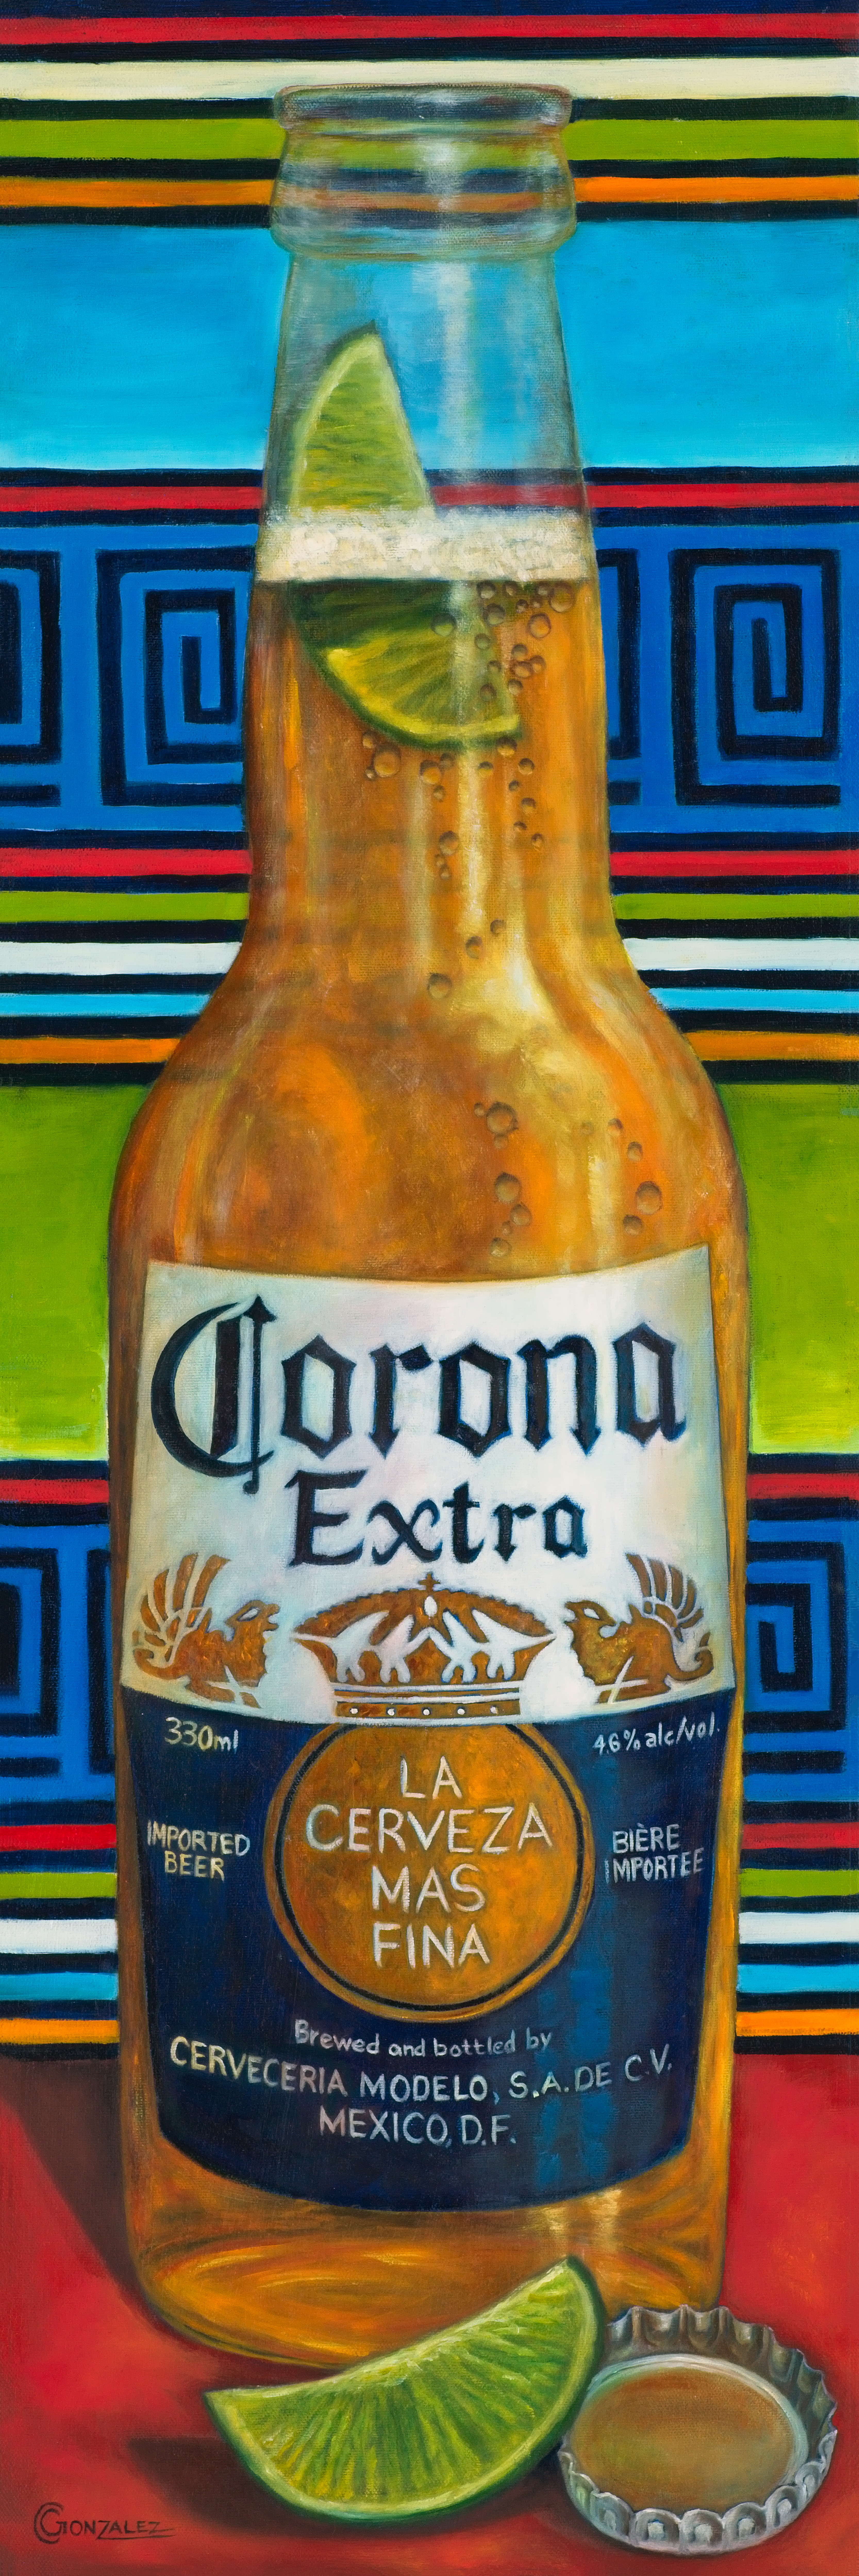 Carmen Gonzalez: 'una cerveza', 2015 Oil Painting, Food. My goal was to stimulate the vieweraEURtms senses of sight, taste, smell, and touch through realism and amplified colours.  I wanted my viewers to aEURoetaste it with their eyesaEUR which then triggers physical and emotional sensations causing thirst, hunger, joy, excitement, comfort, and perhaps guilt or regret. ...